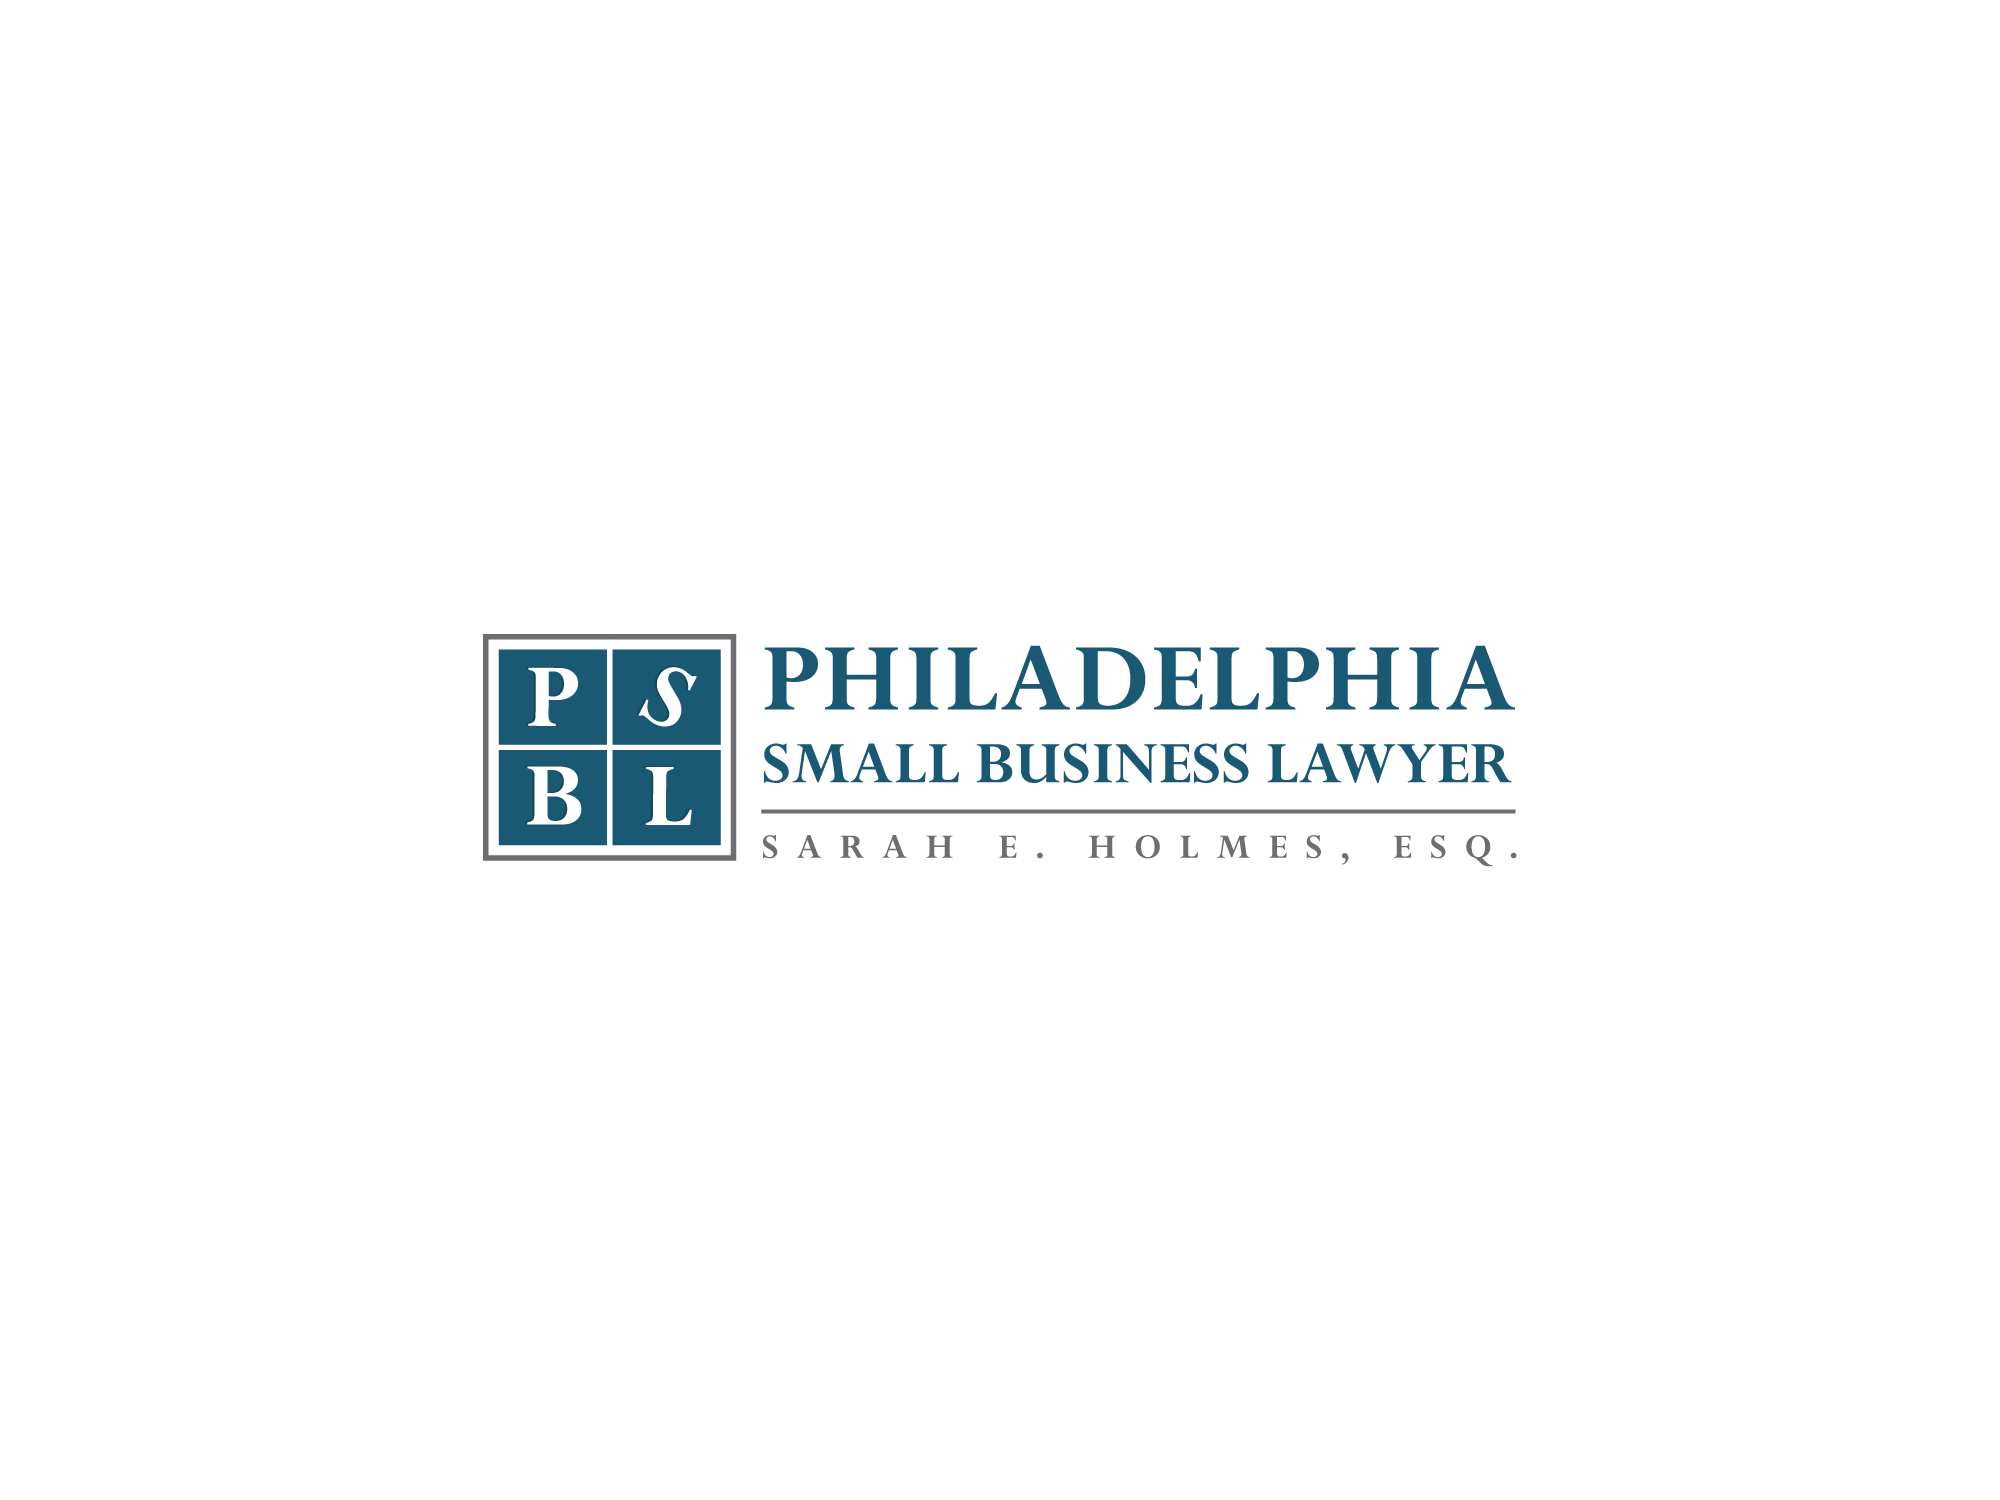 Philadelphia Small Business Lawyer Sarah E. Holmes Logo